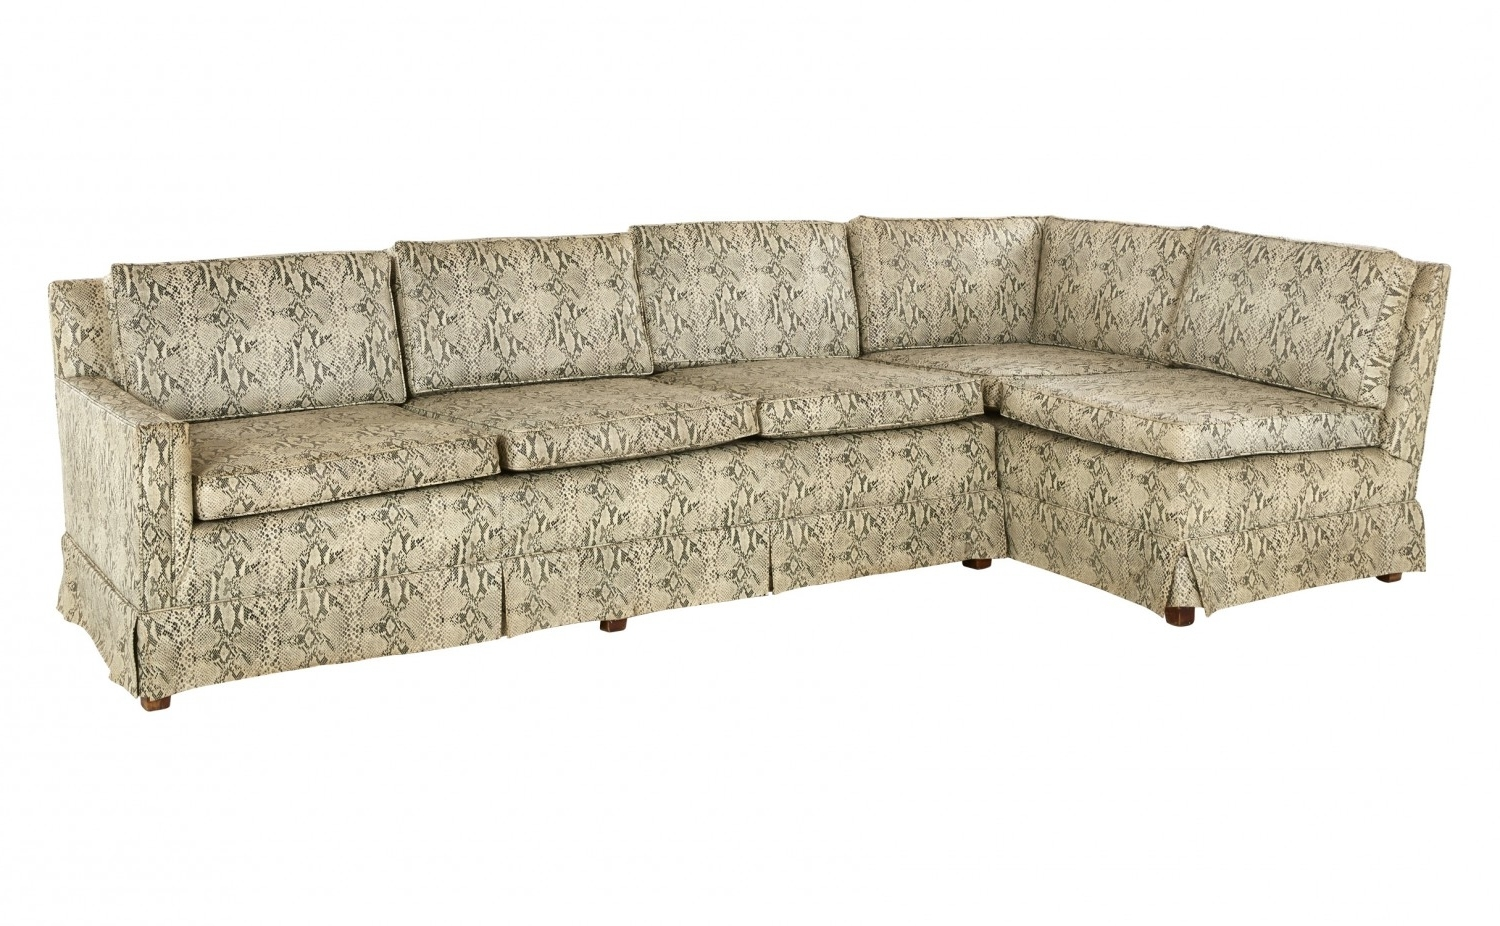 Vintage Sectional Sofas In Preferred Vintage Snakeskin Sectional Sofa (View 10 of 20)